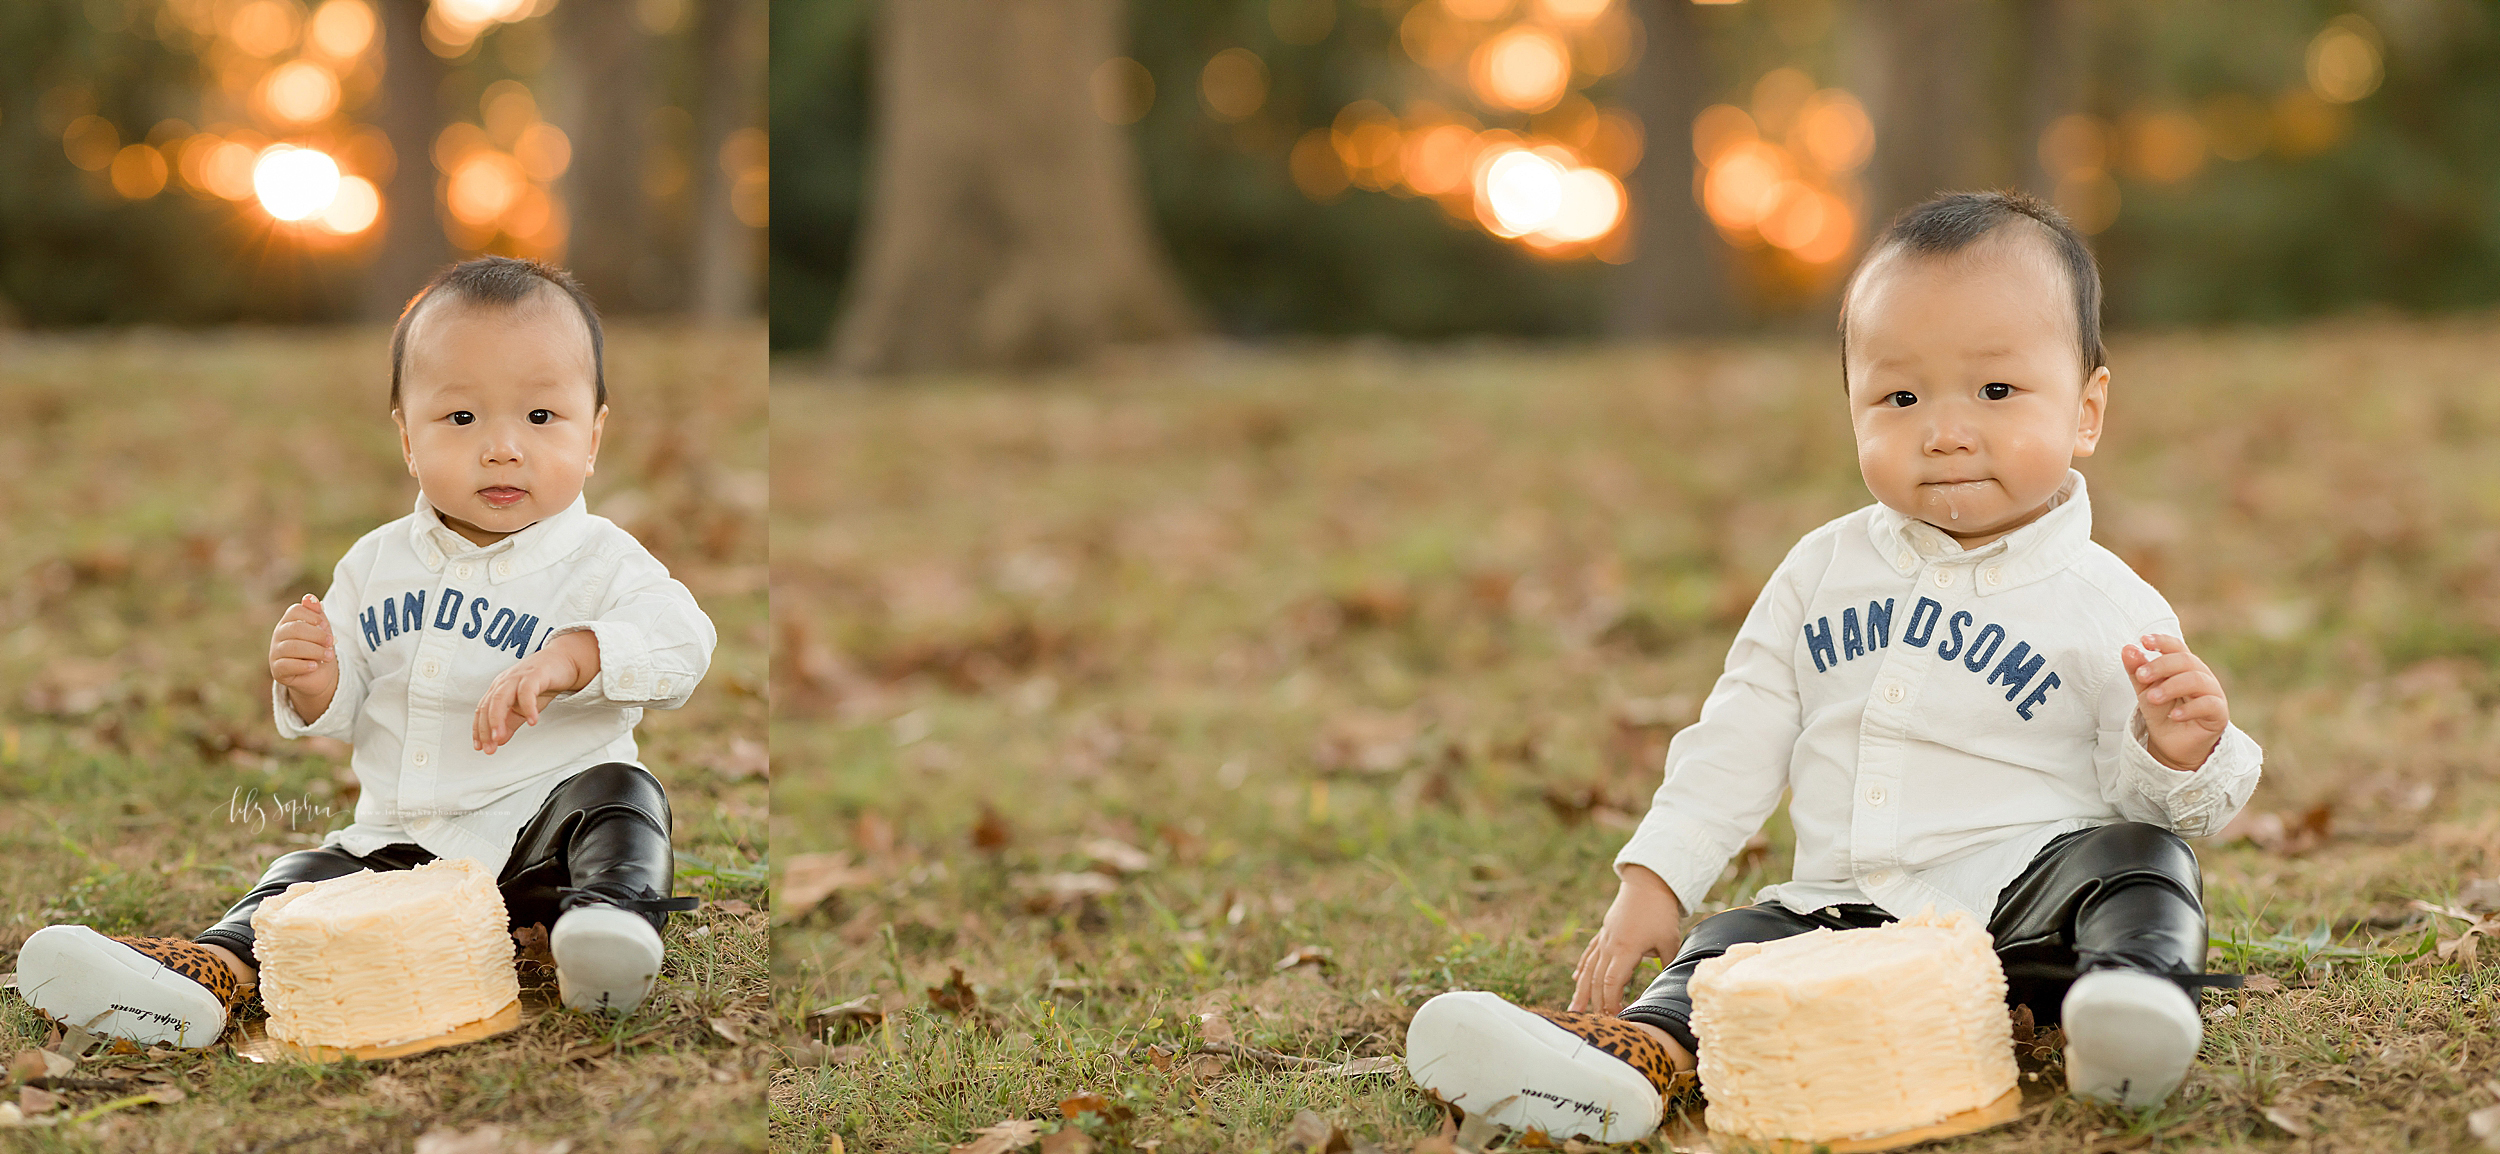 atlanta-buckhead-brookhaven-decatur-lily-sophia-photography--photographer-portraits-grant-park-intown-park-sunset-first-birthday-cake-smash-one-year-old-outdoors-cool-asian-american-family_0096.jpg